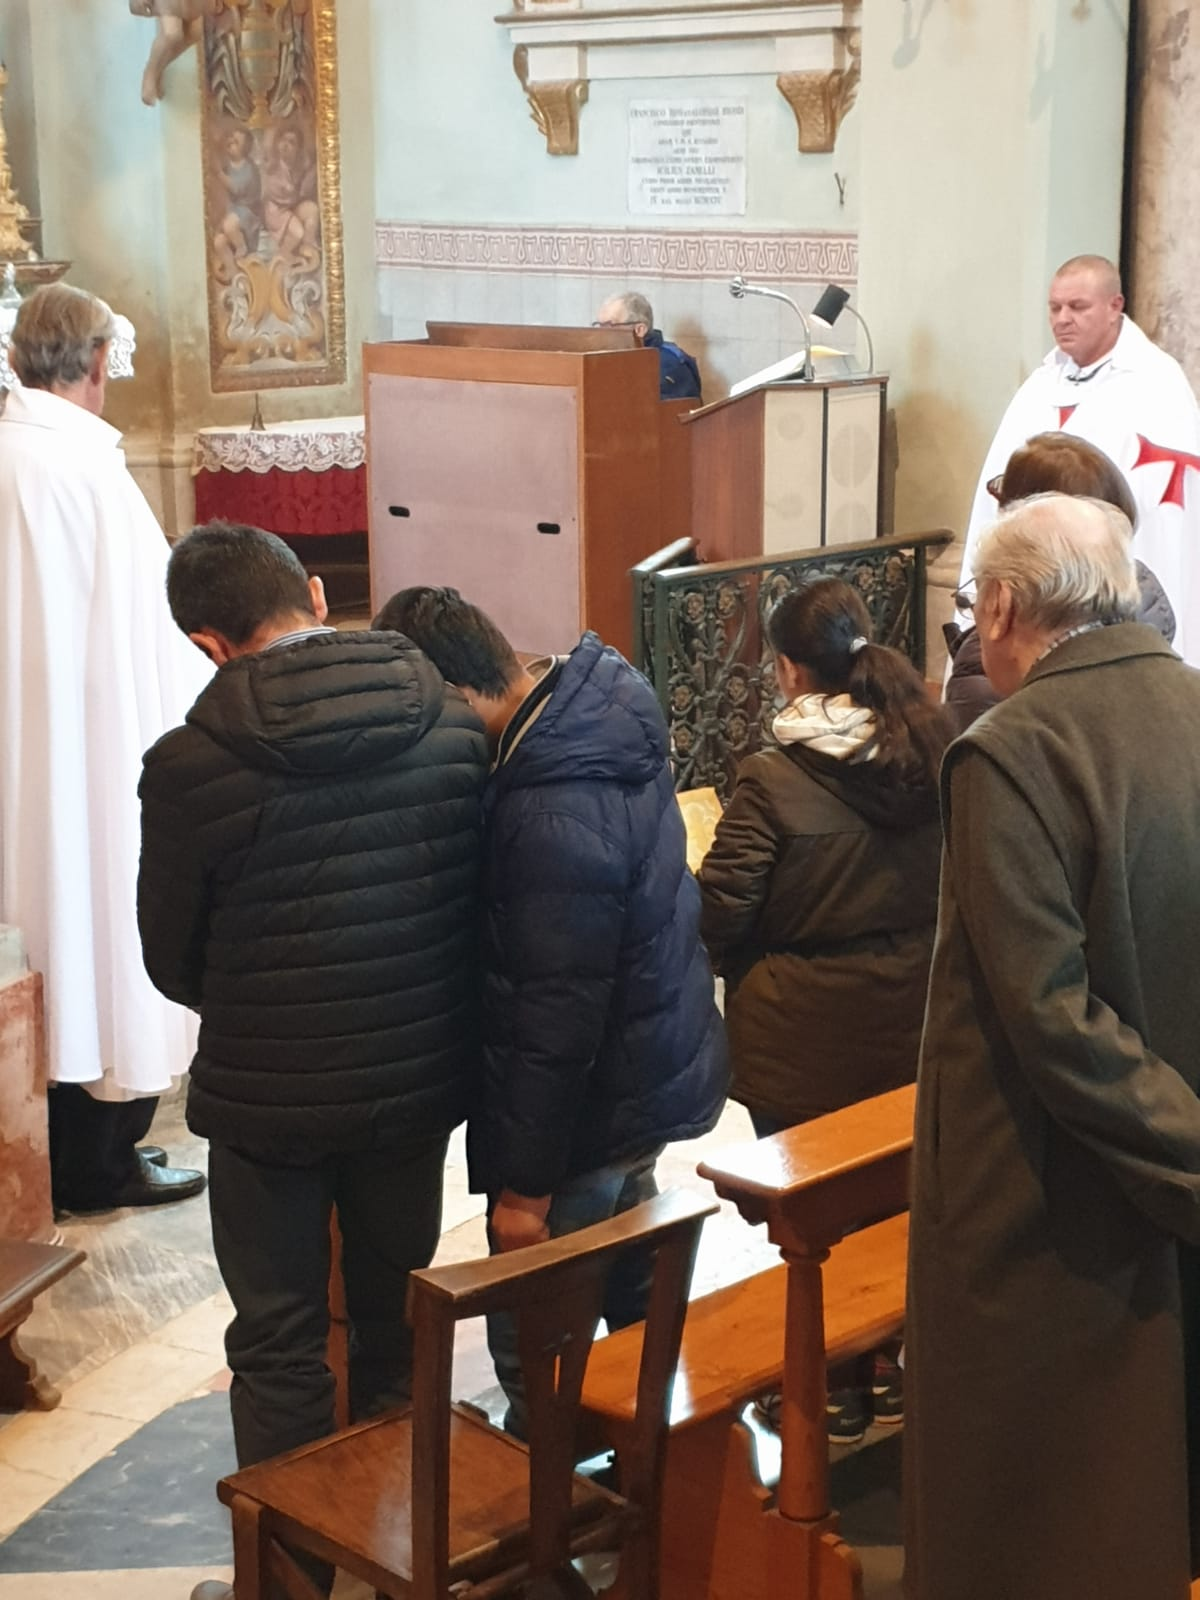 Turno di custodia – Chiesa di San Domenico Imola (BO) 24.11.2019